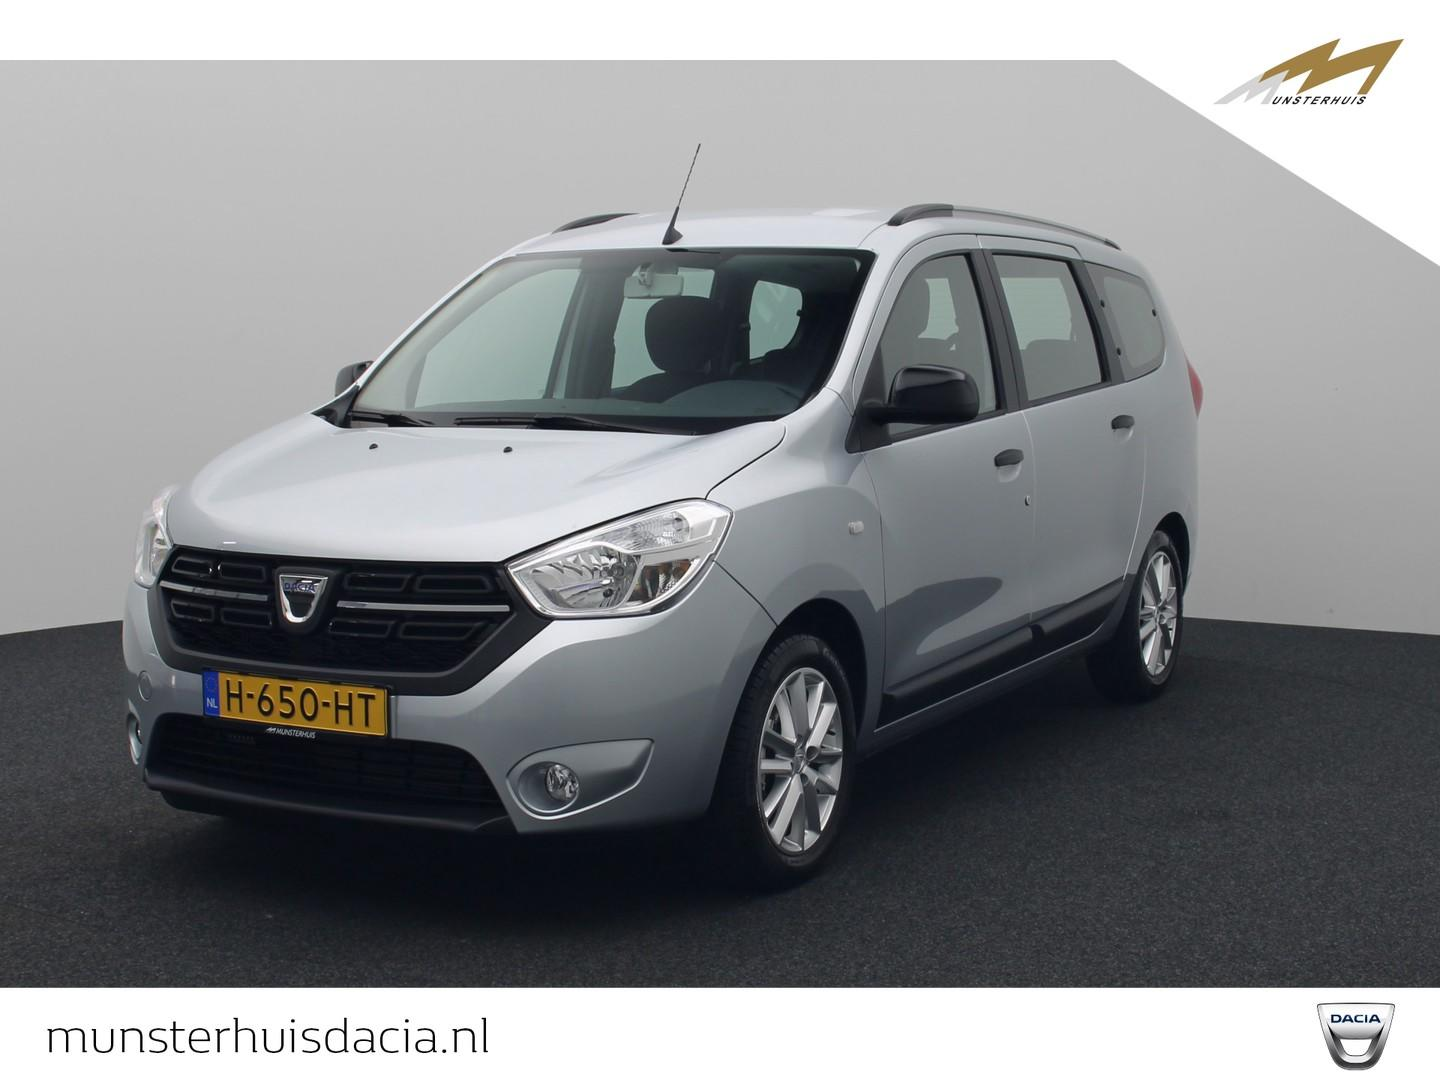 Dacia Lodgy Tce 130 lauréate 7 zits - 7 persoons - demo -